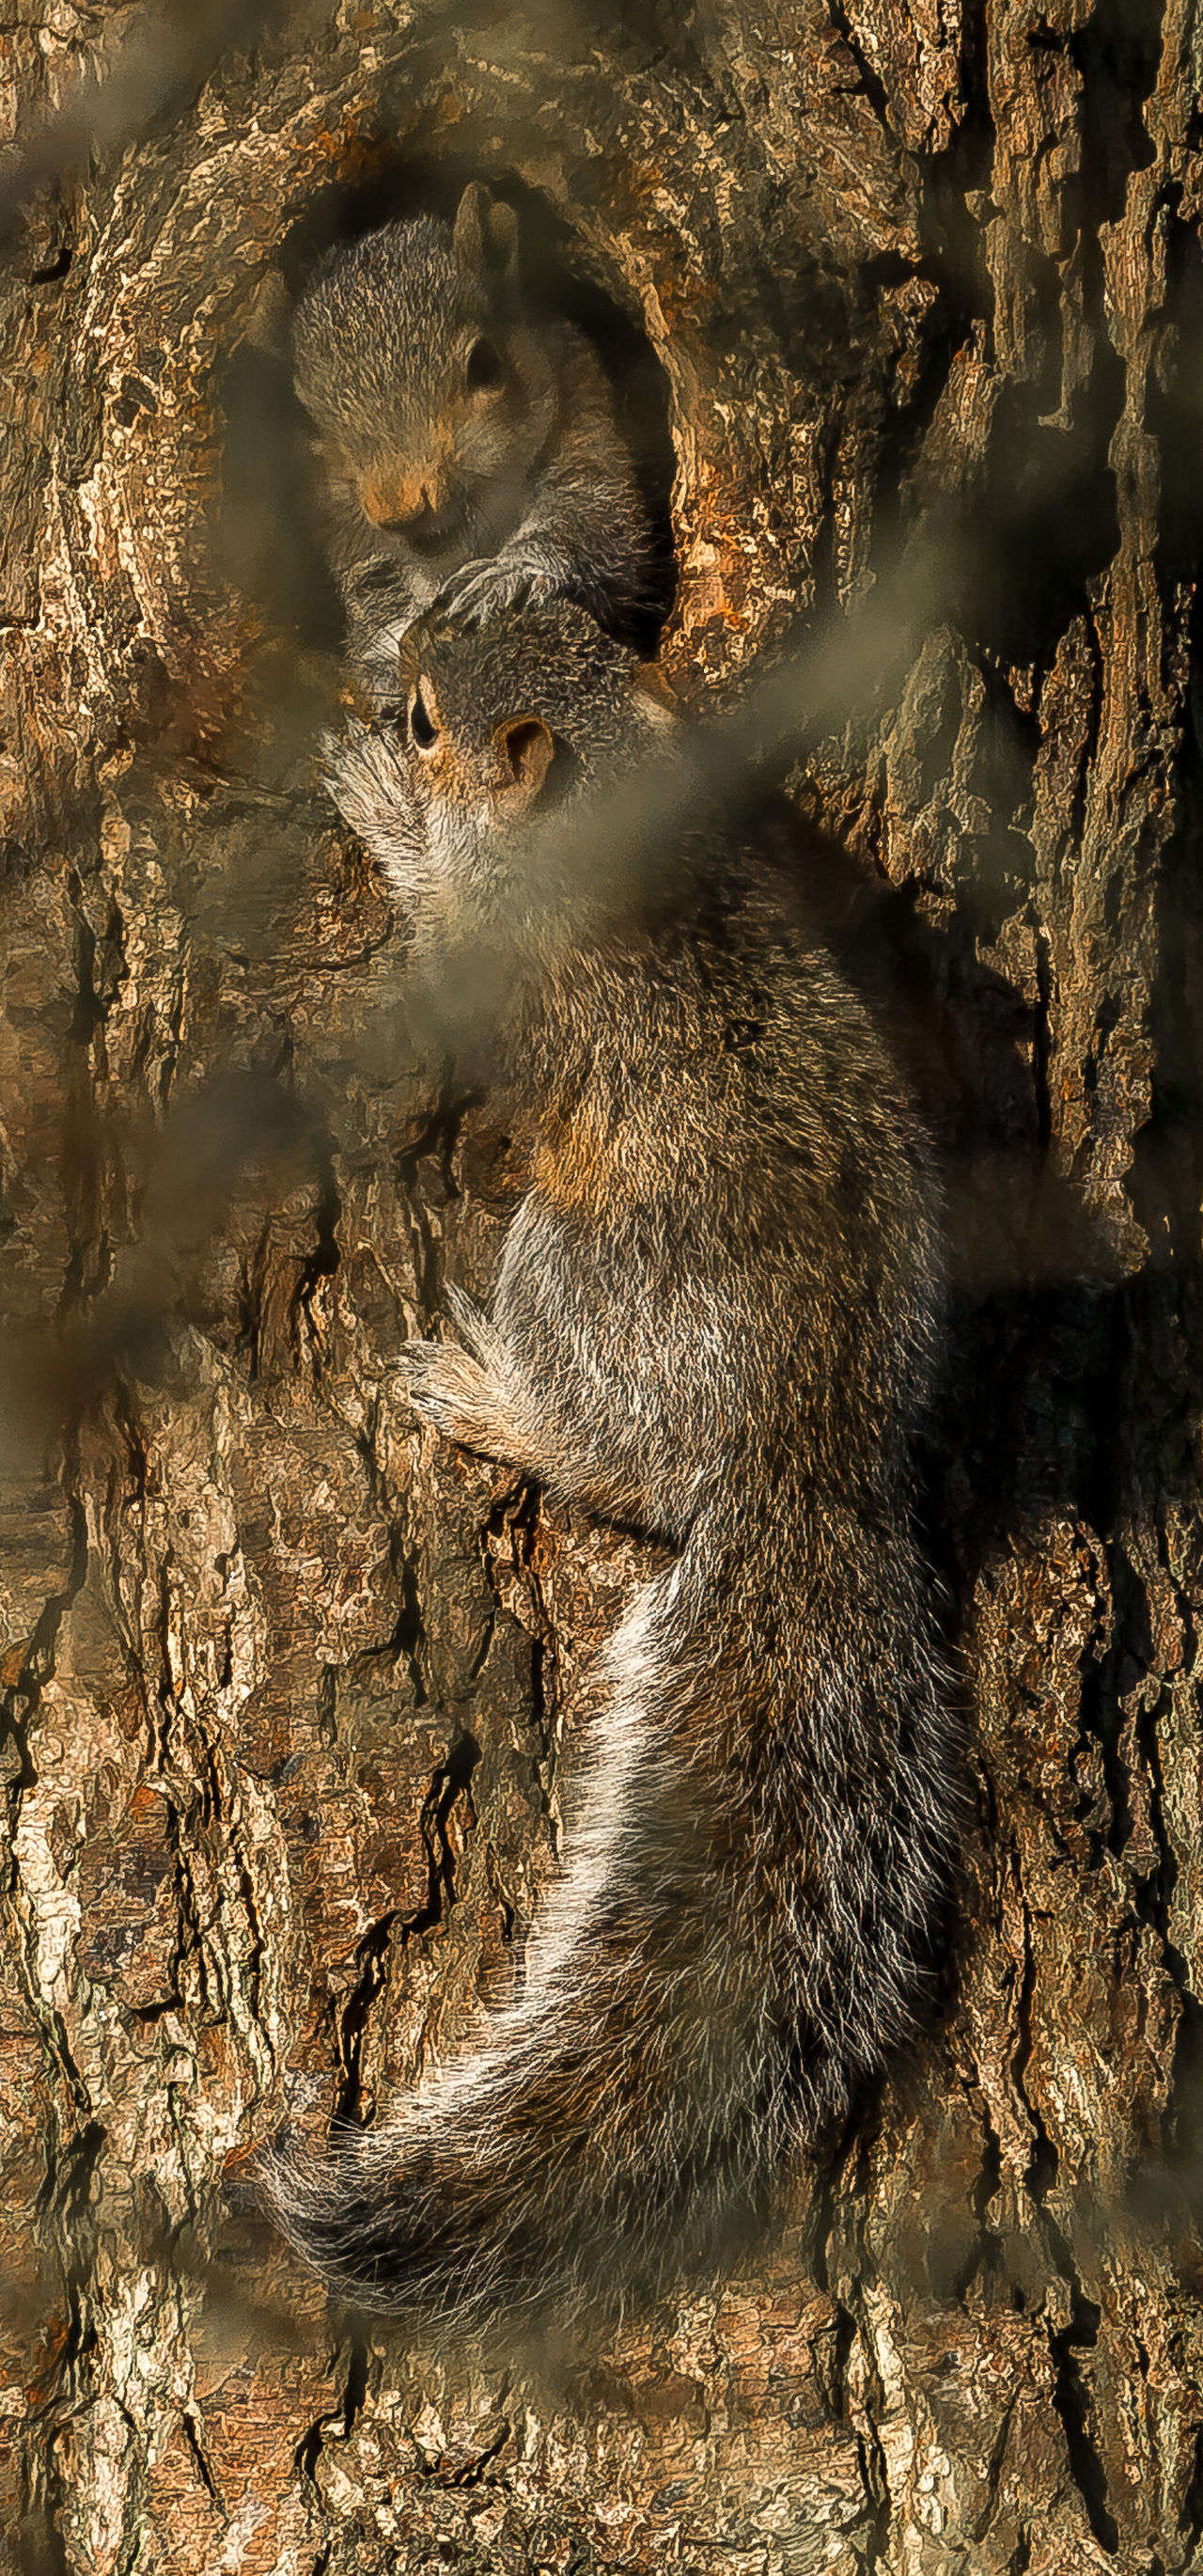 Playing in the sun Nature Outdide Playing Spring Springtime Squirell On Tree Squirellsrcute Wildlife & Nature Young Squirells The Great Outdoors - 2016 EyeEm Awards Natures Diversities